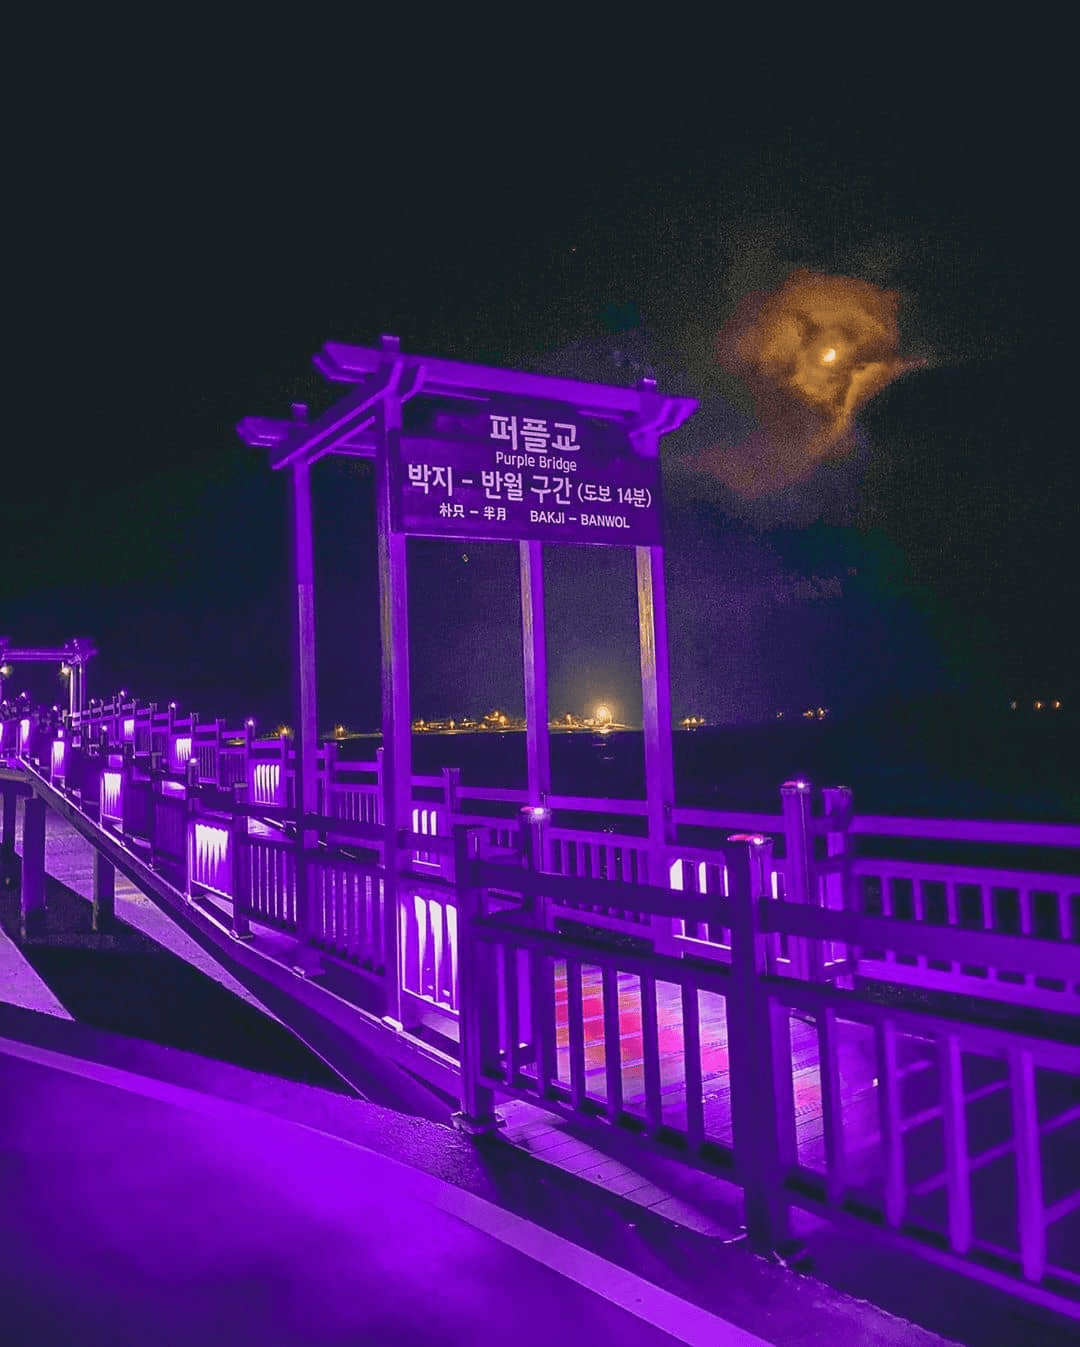 Magical purple town in South Korea